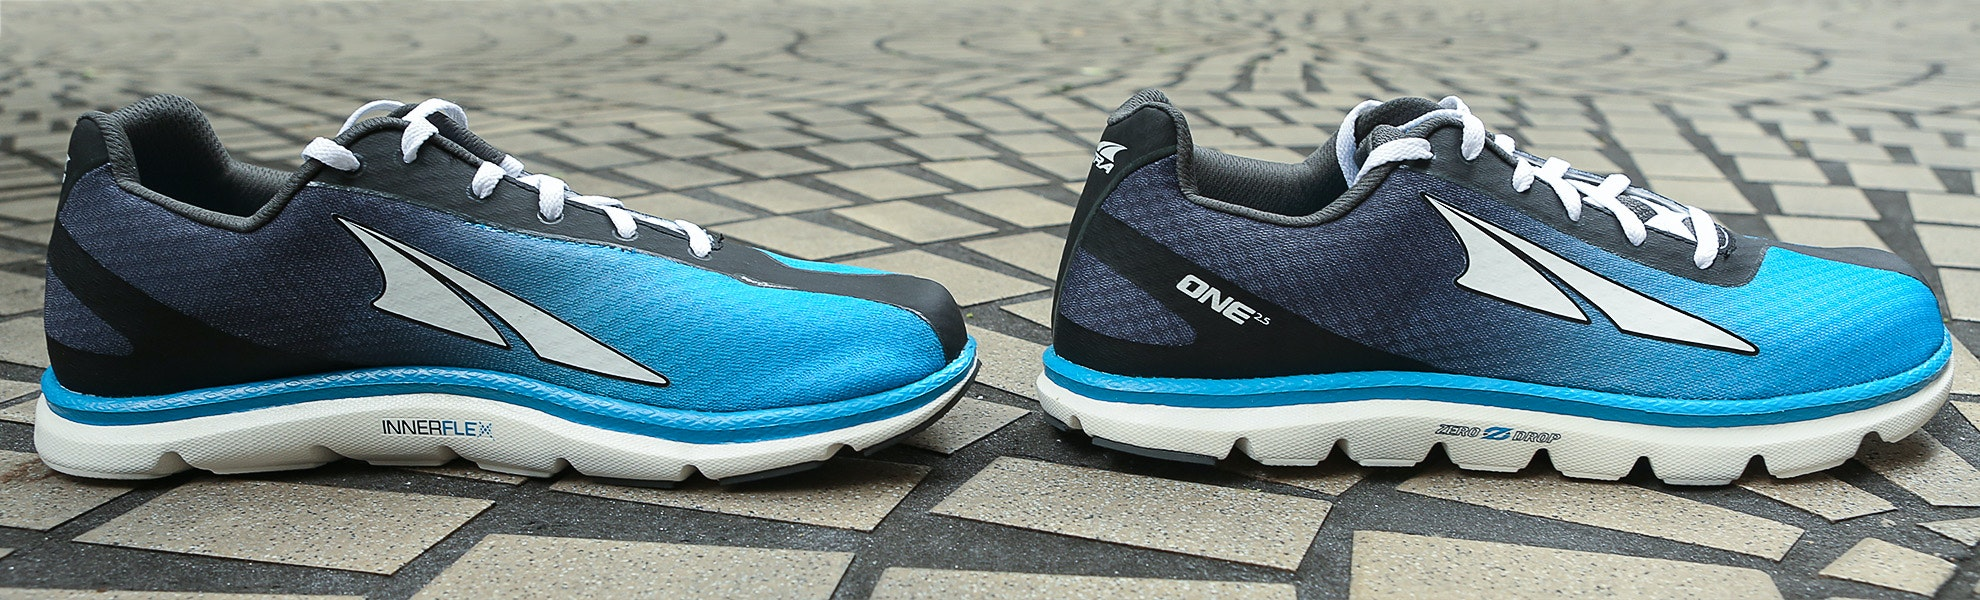 Altra One 2.5 Running Shoes